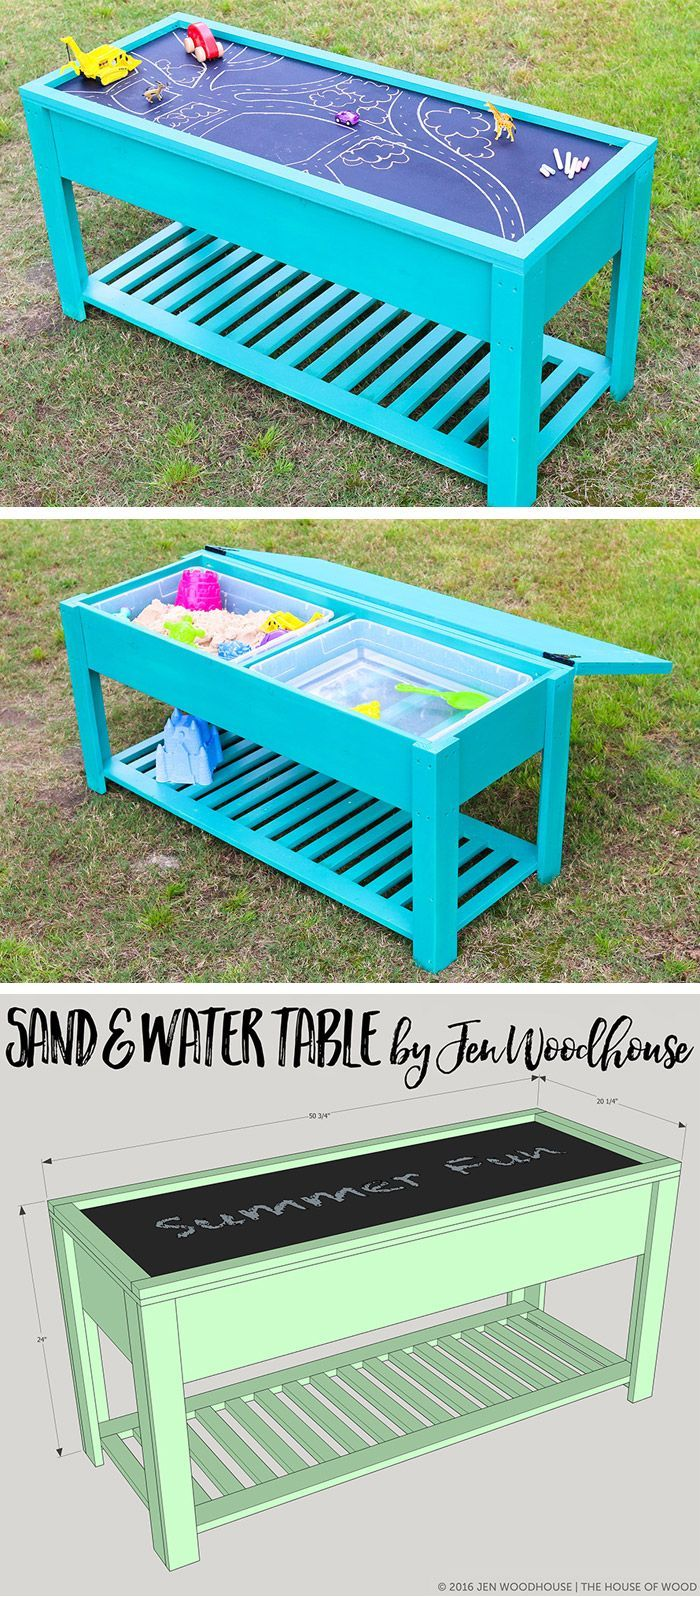 Learn how to build a fun DIY sand and water table for your kids! Free plans by Jen Woodhouse